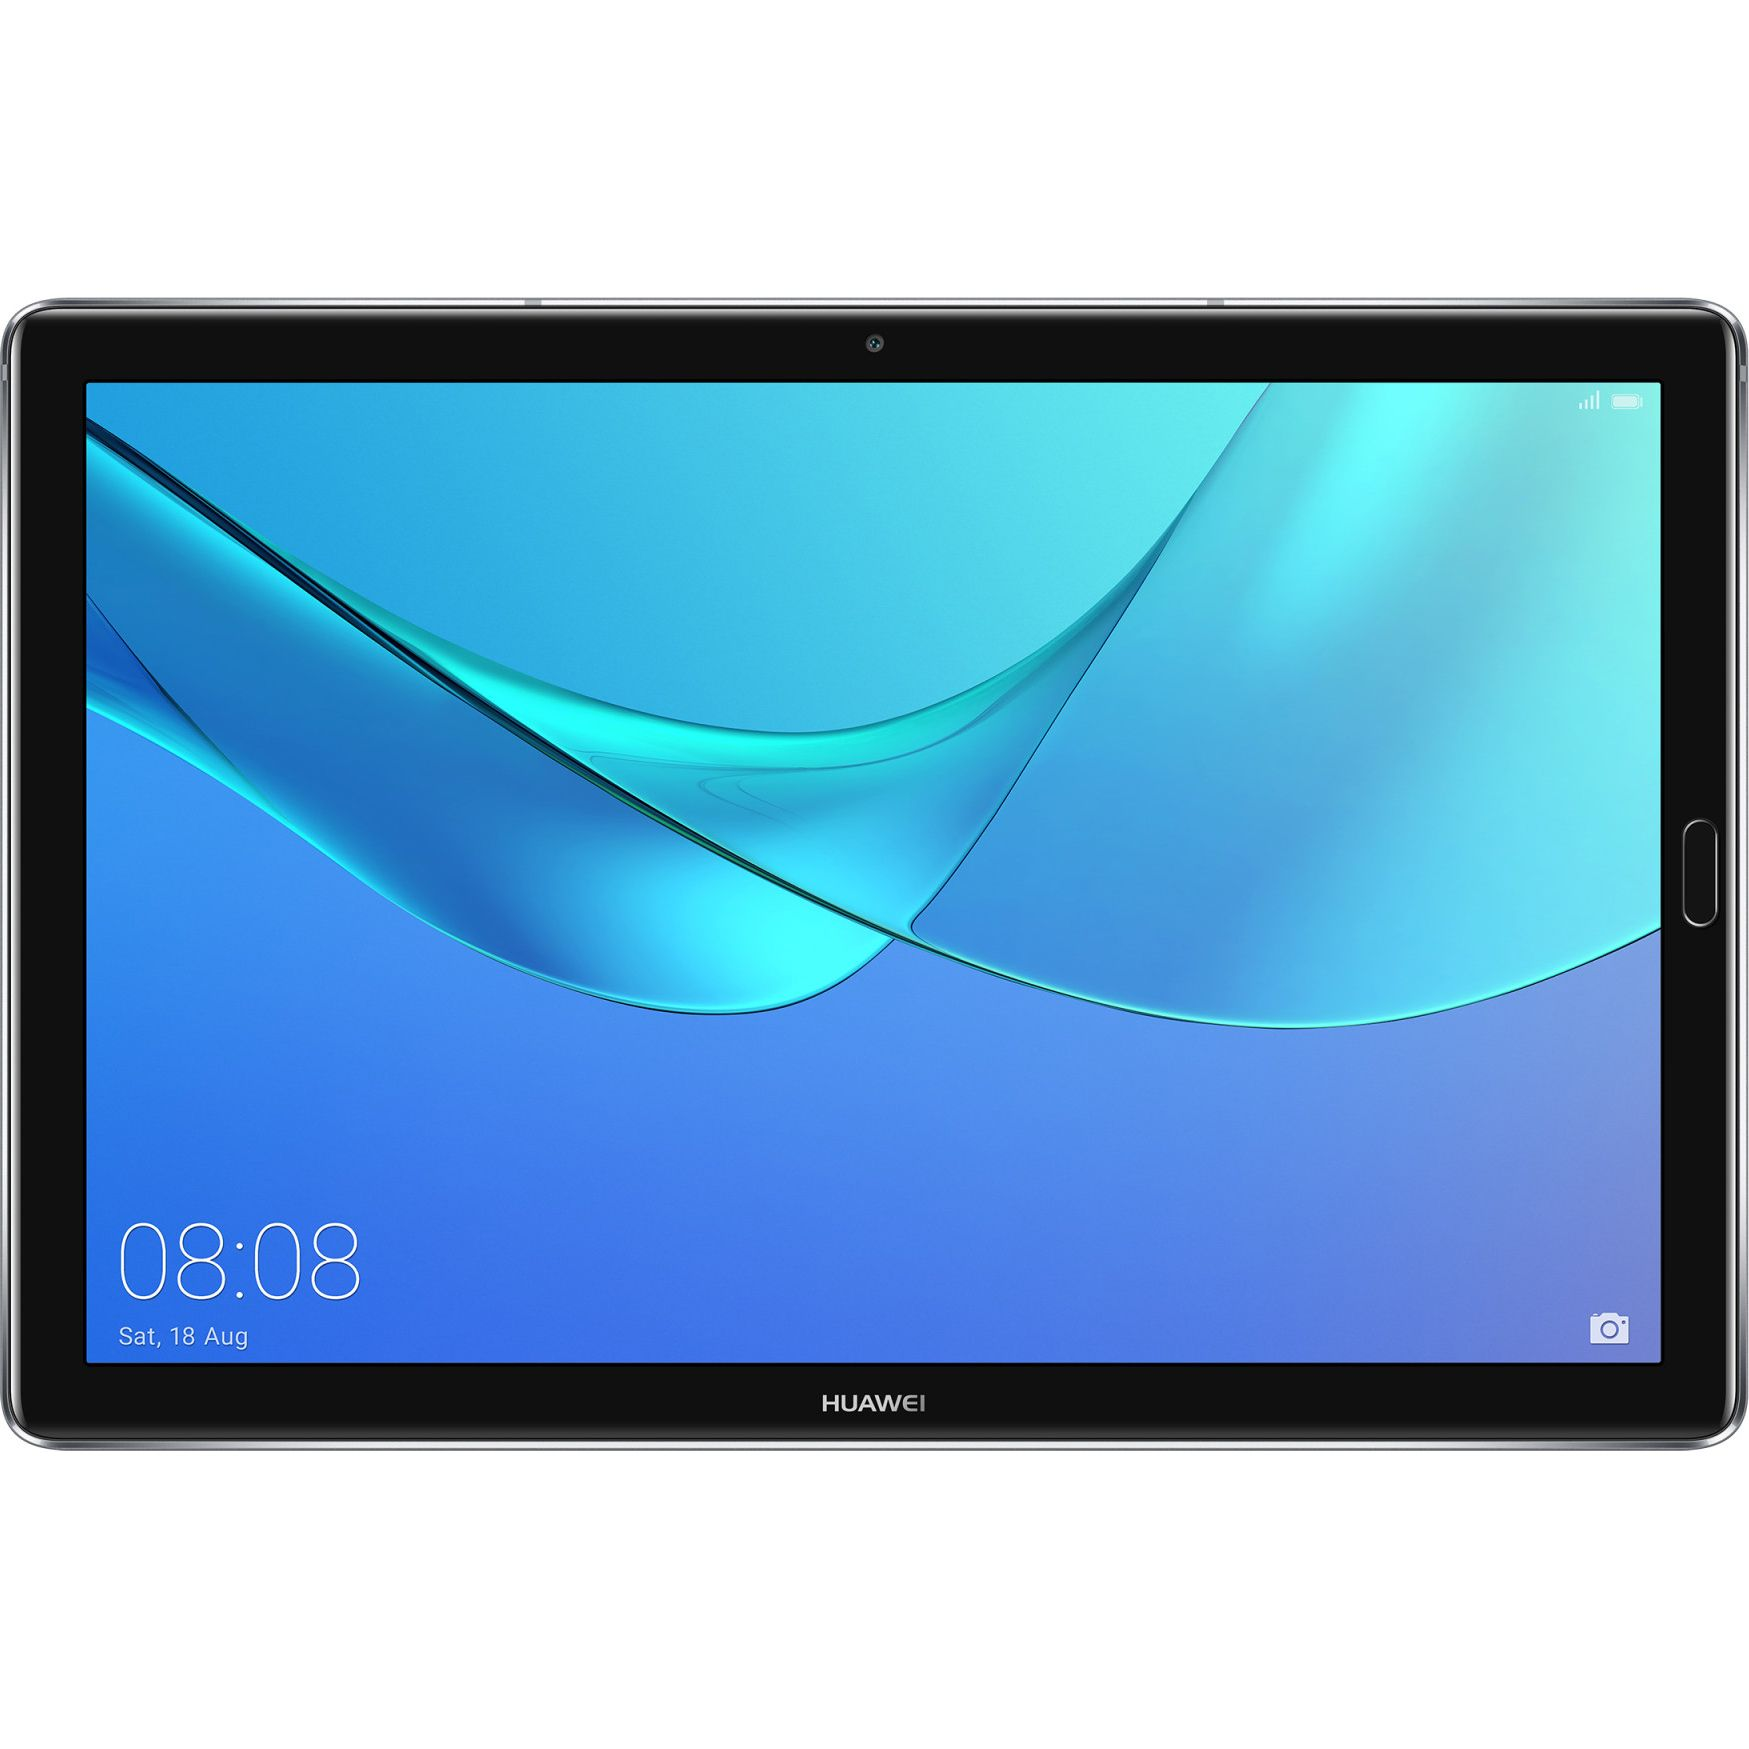 Tableta Huawei MediaPad M5 10 10.8 64GB Flash 4GB RAM WiFi Grey